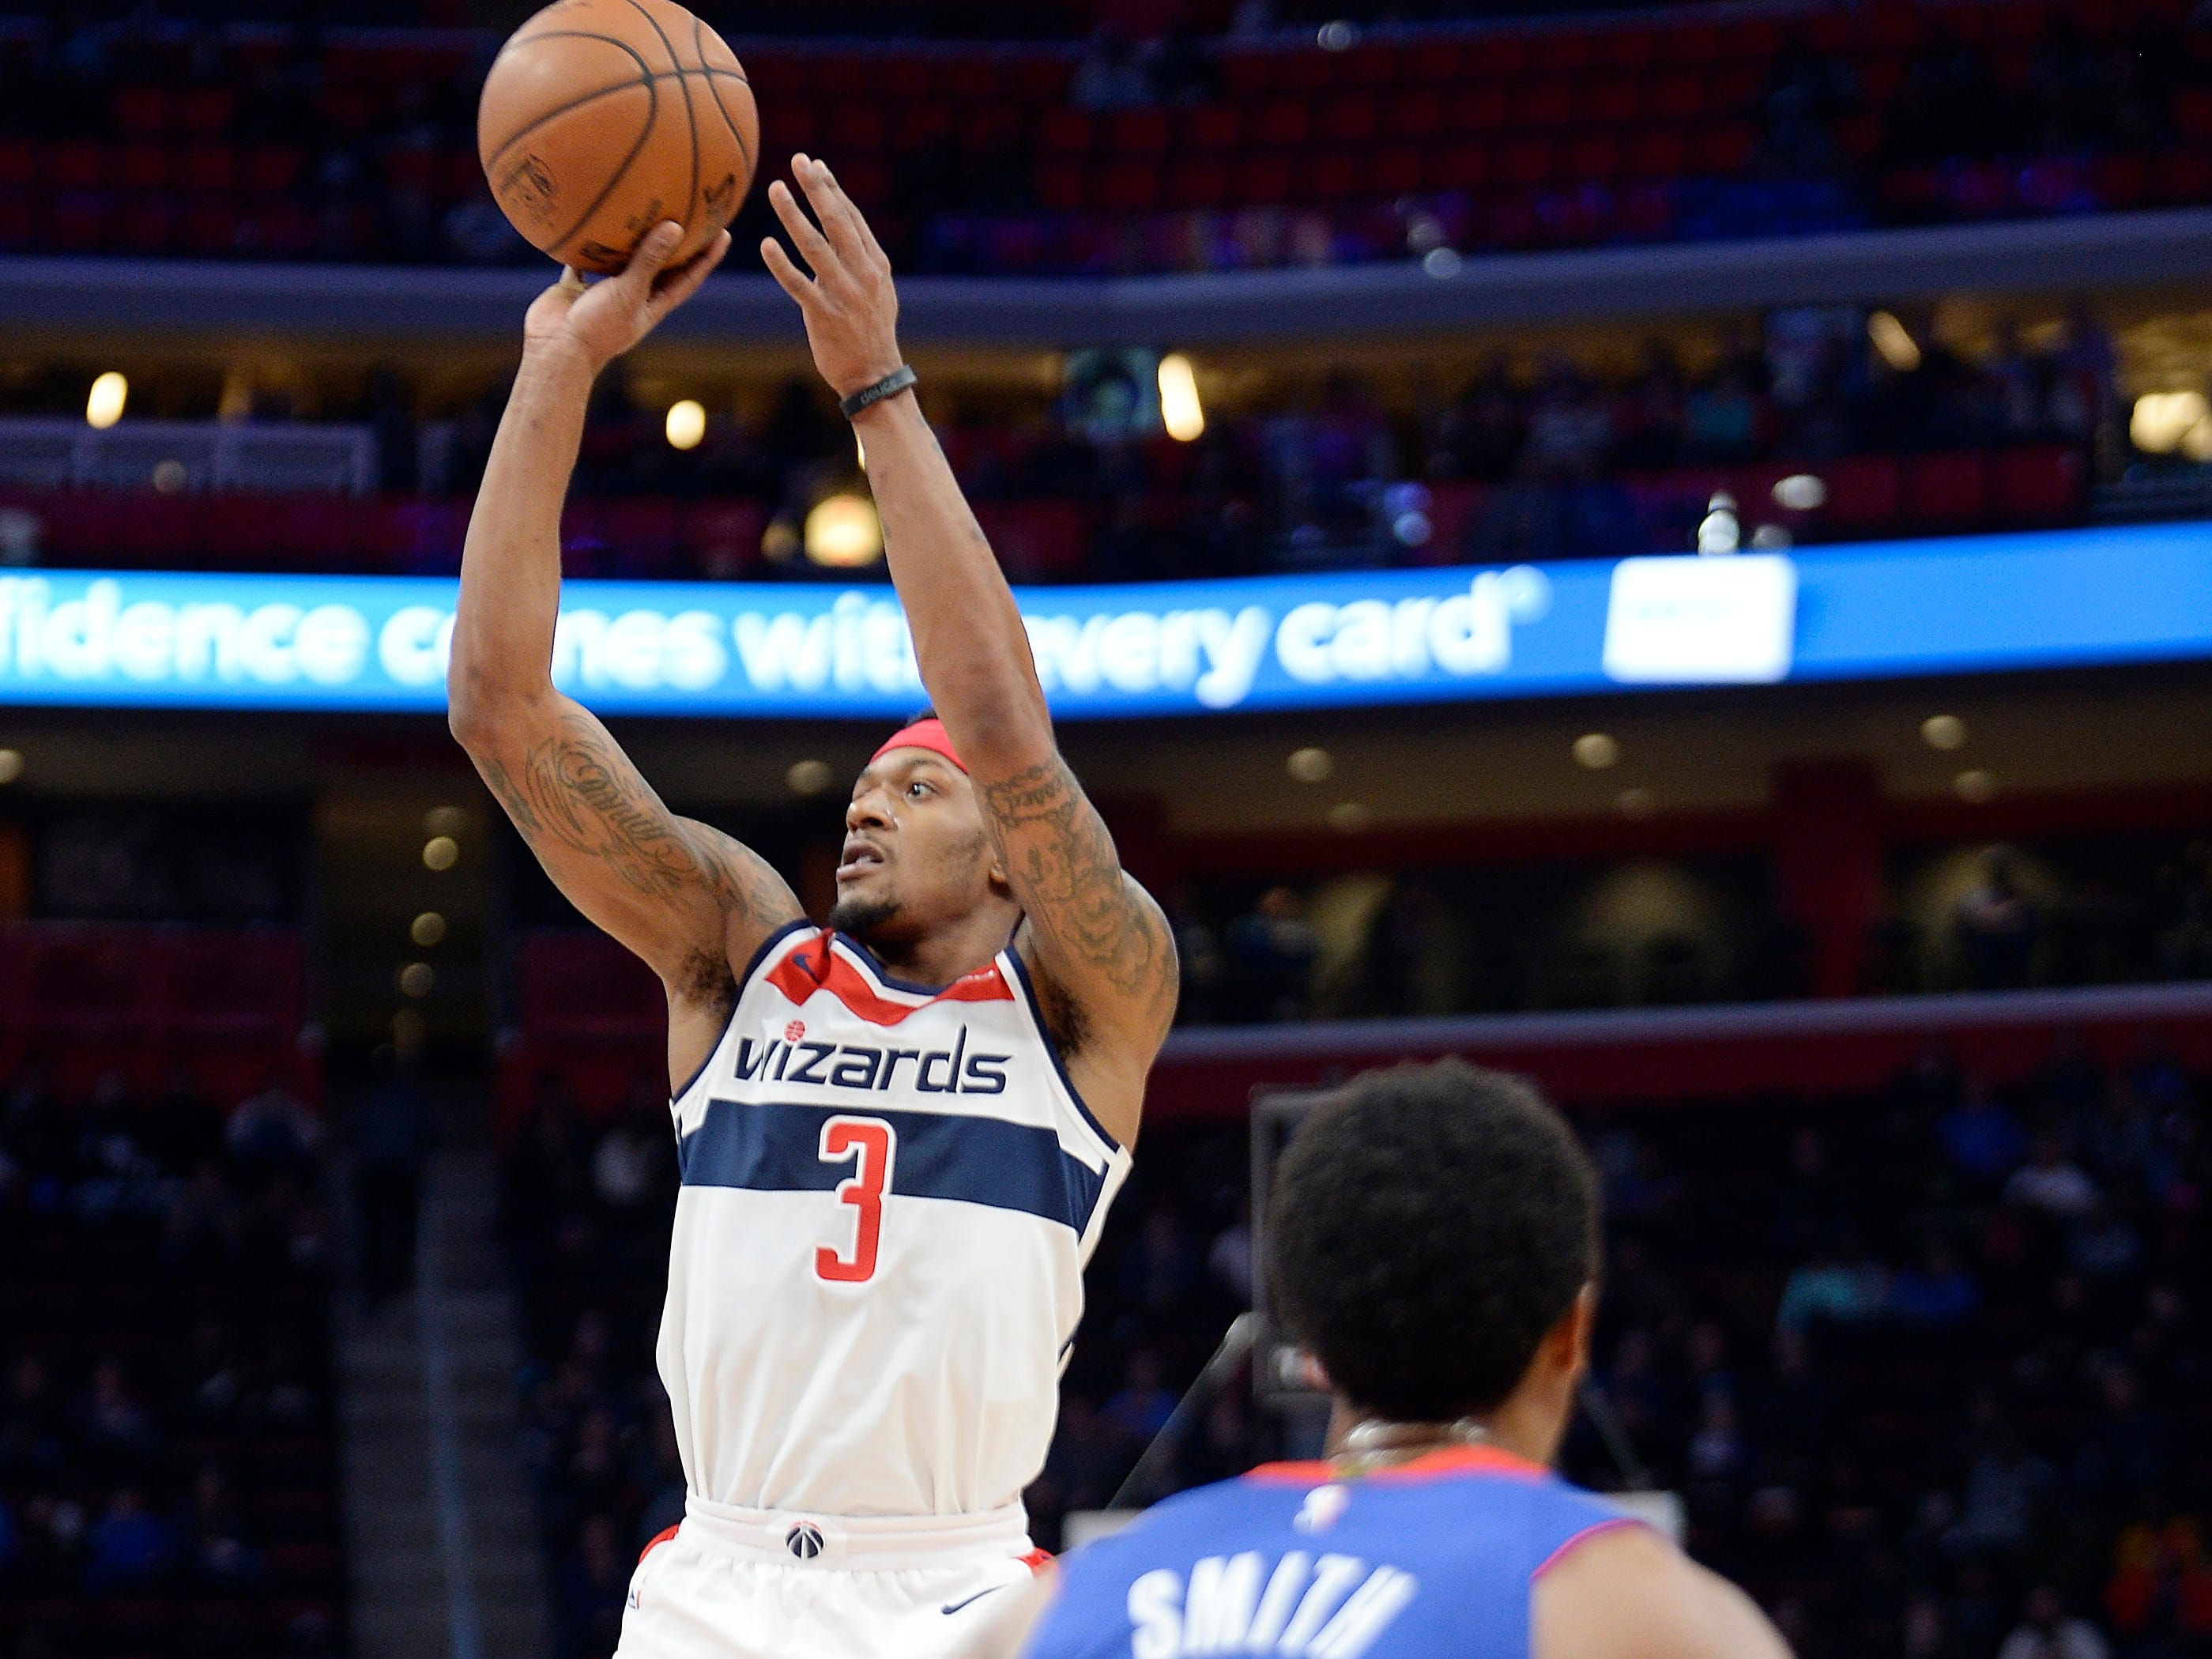 Wizards' Bradley Beal shoots over Pistons' Ish Smith in the fourth quarter.